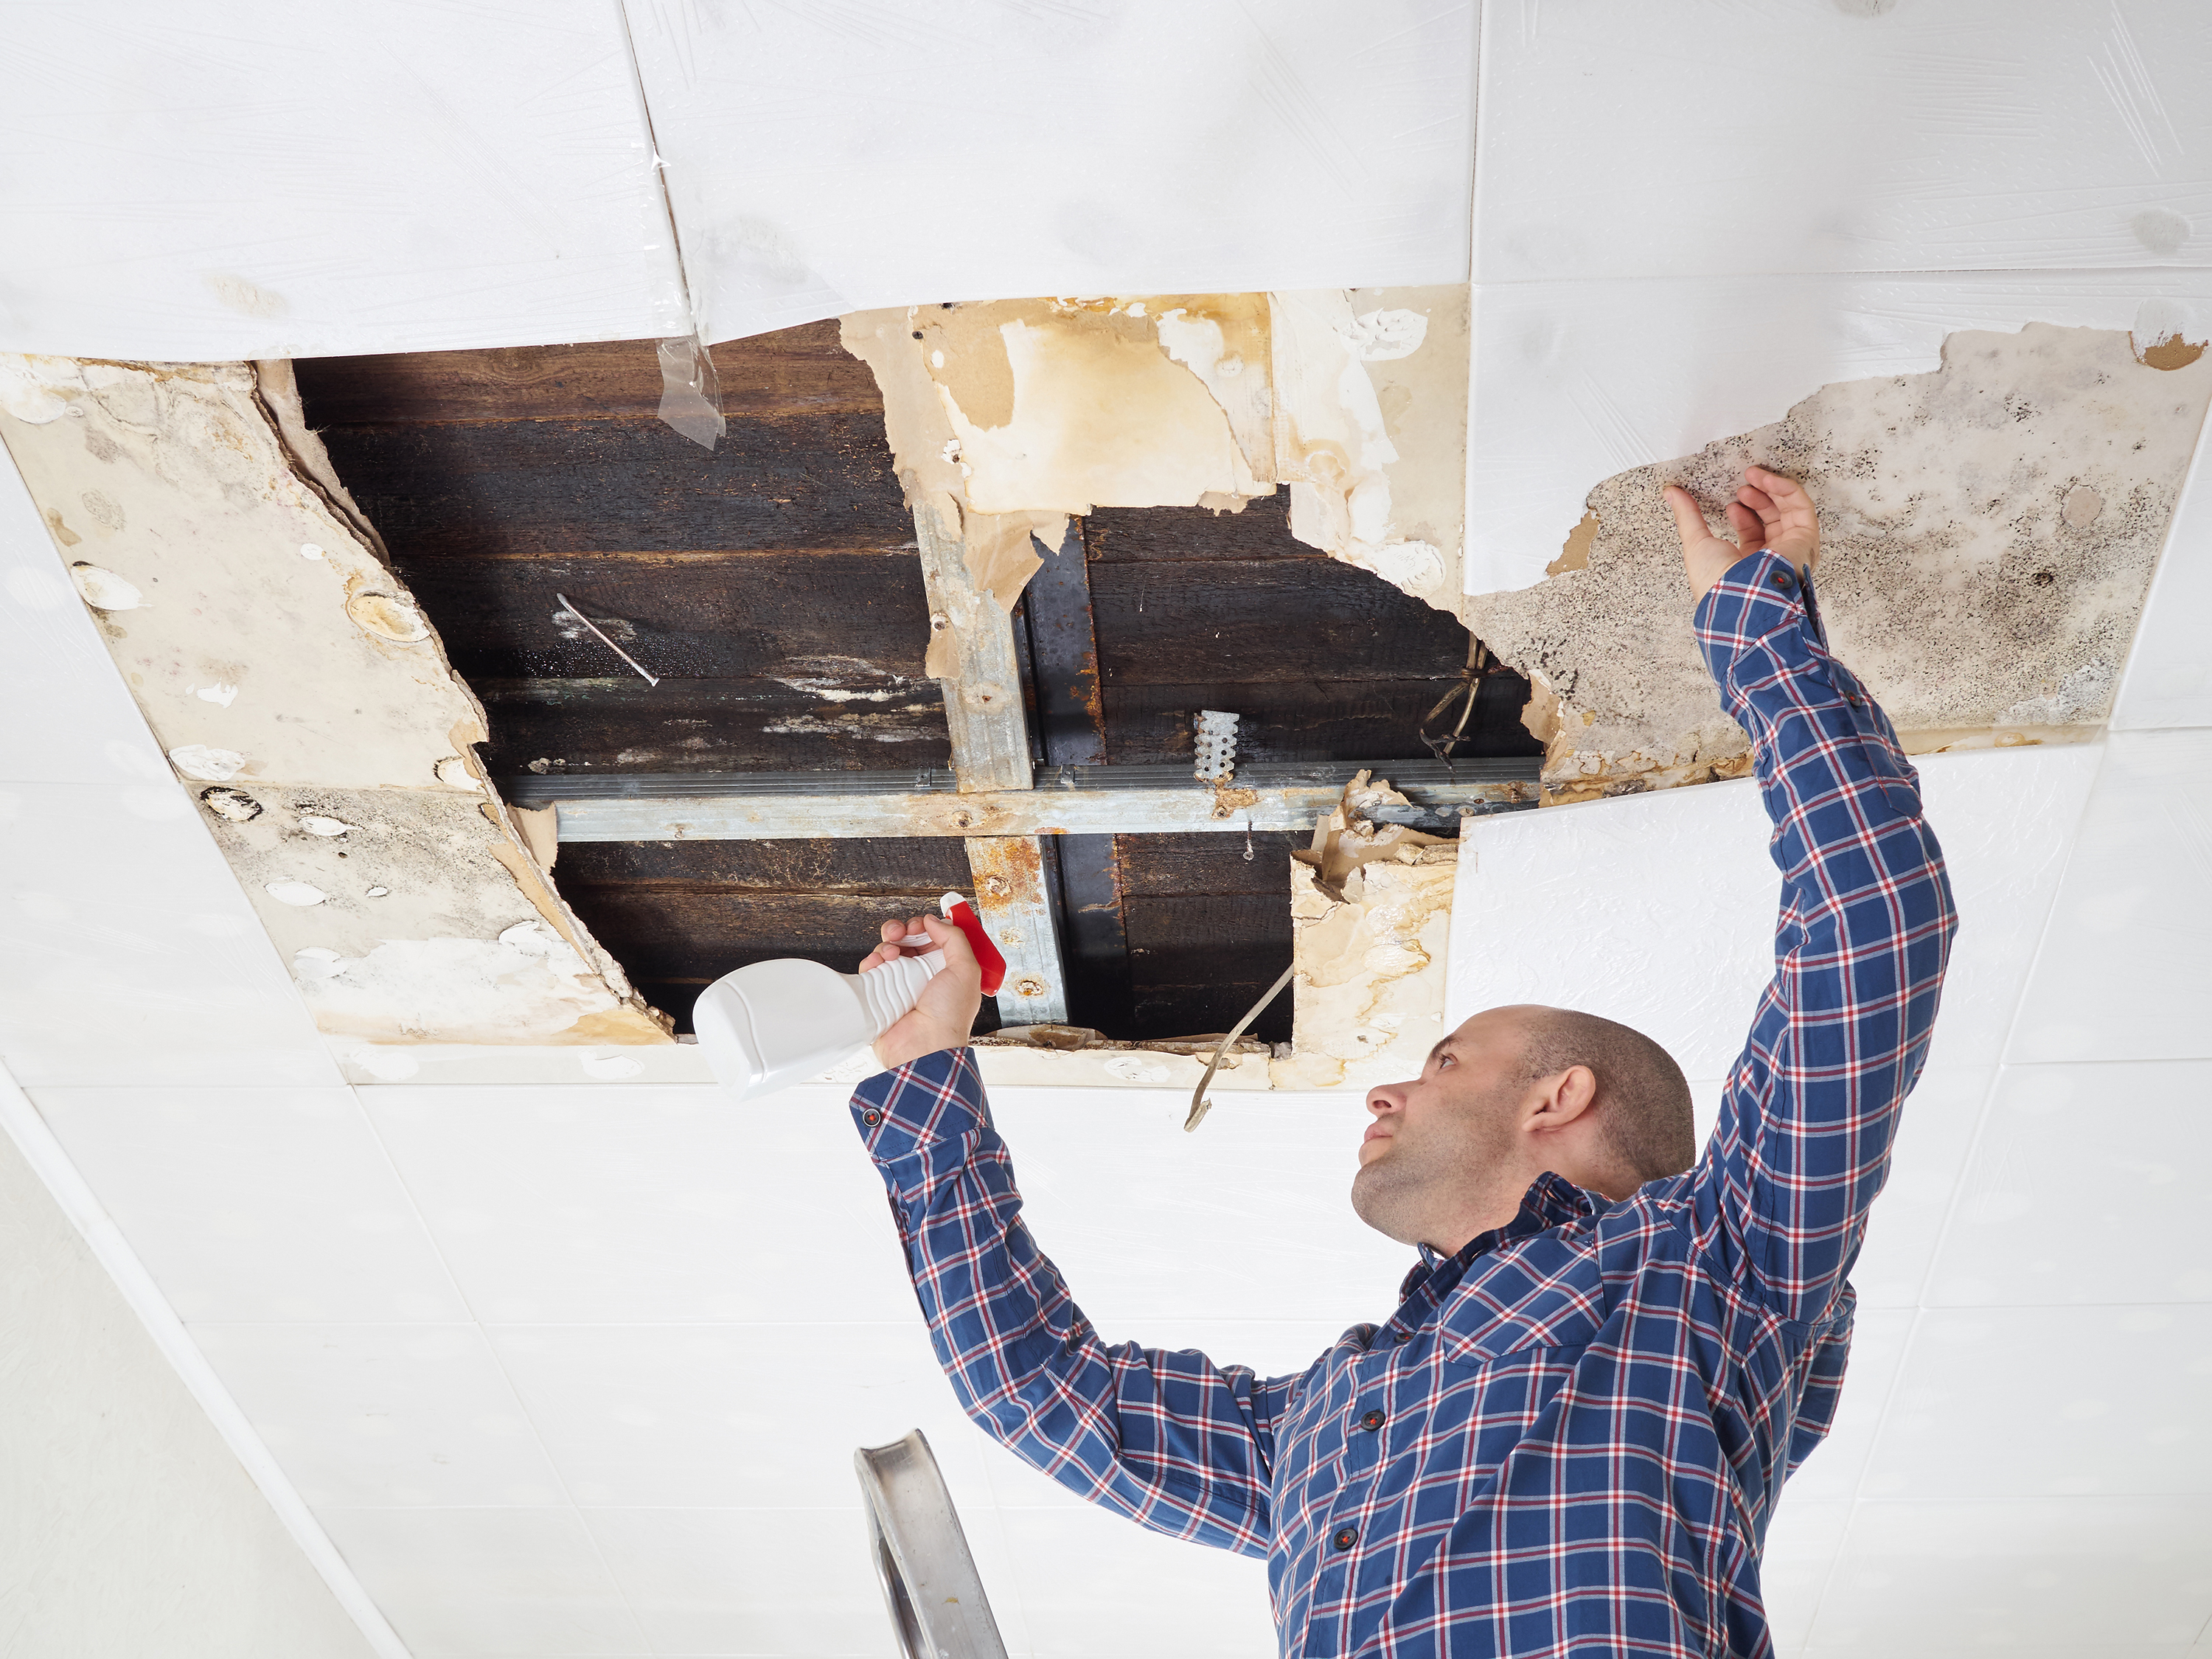 DIY MOLD REMOVAL CAN DO MORE HARM THAN GOOD